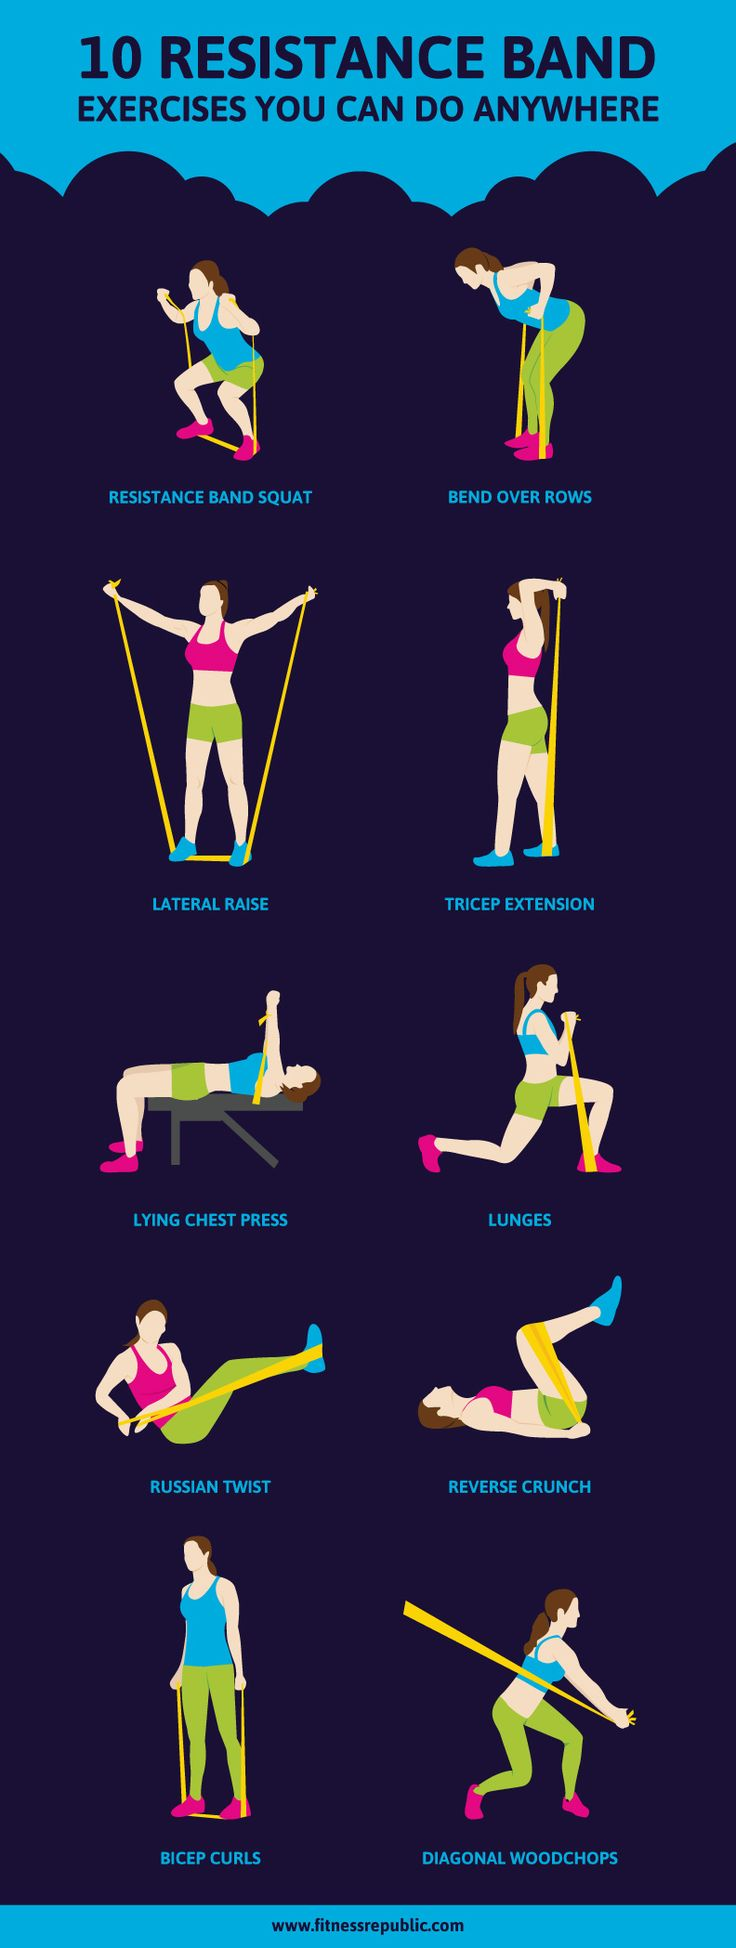 10 Resistance Band Exercises…good for travel